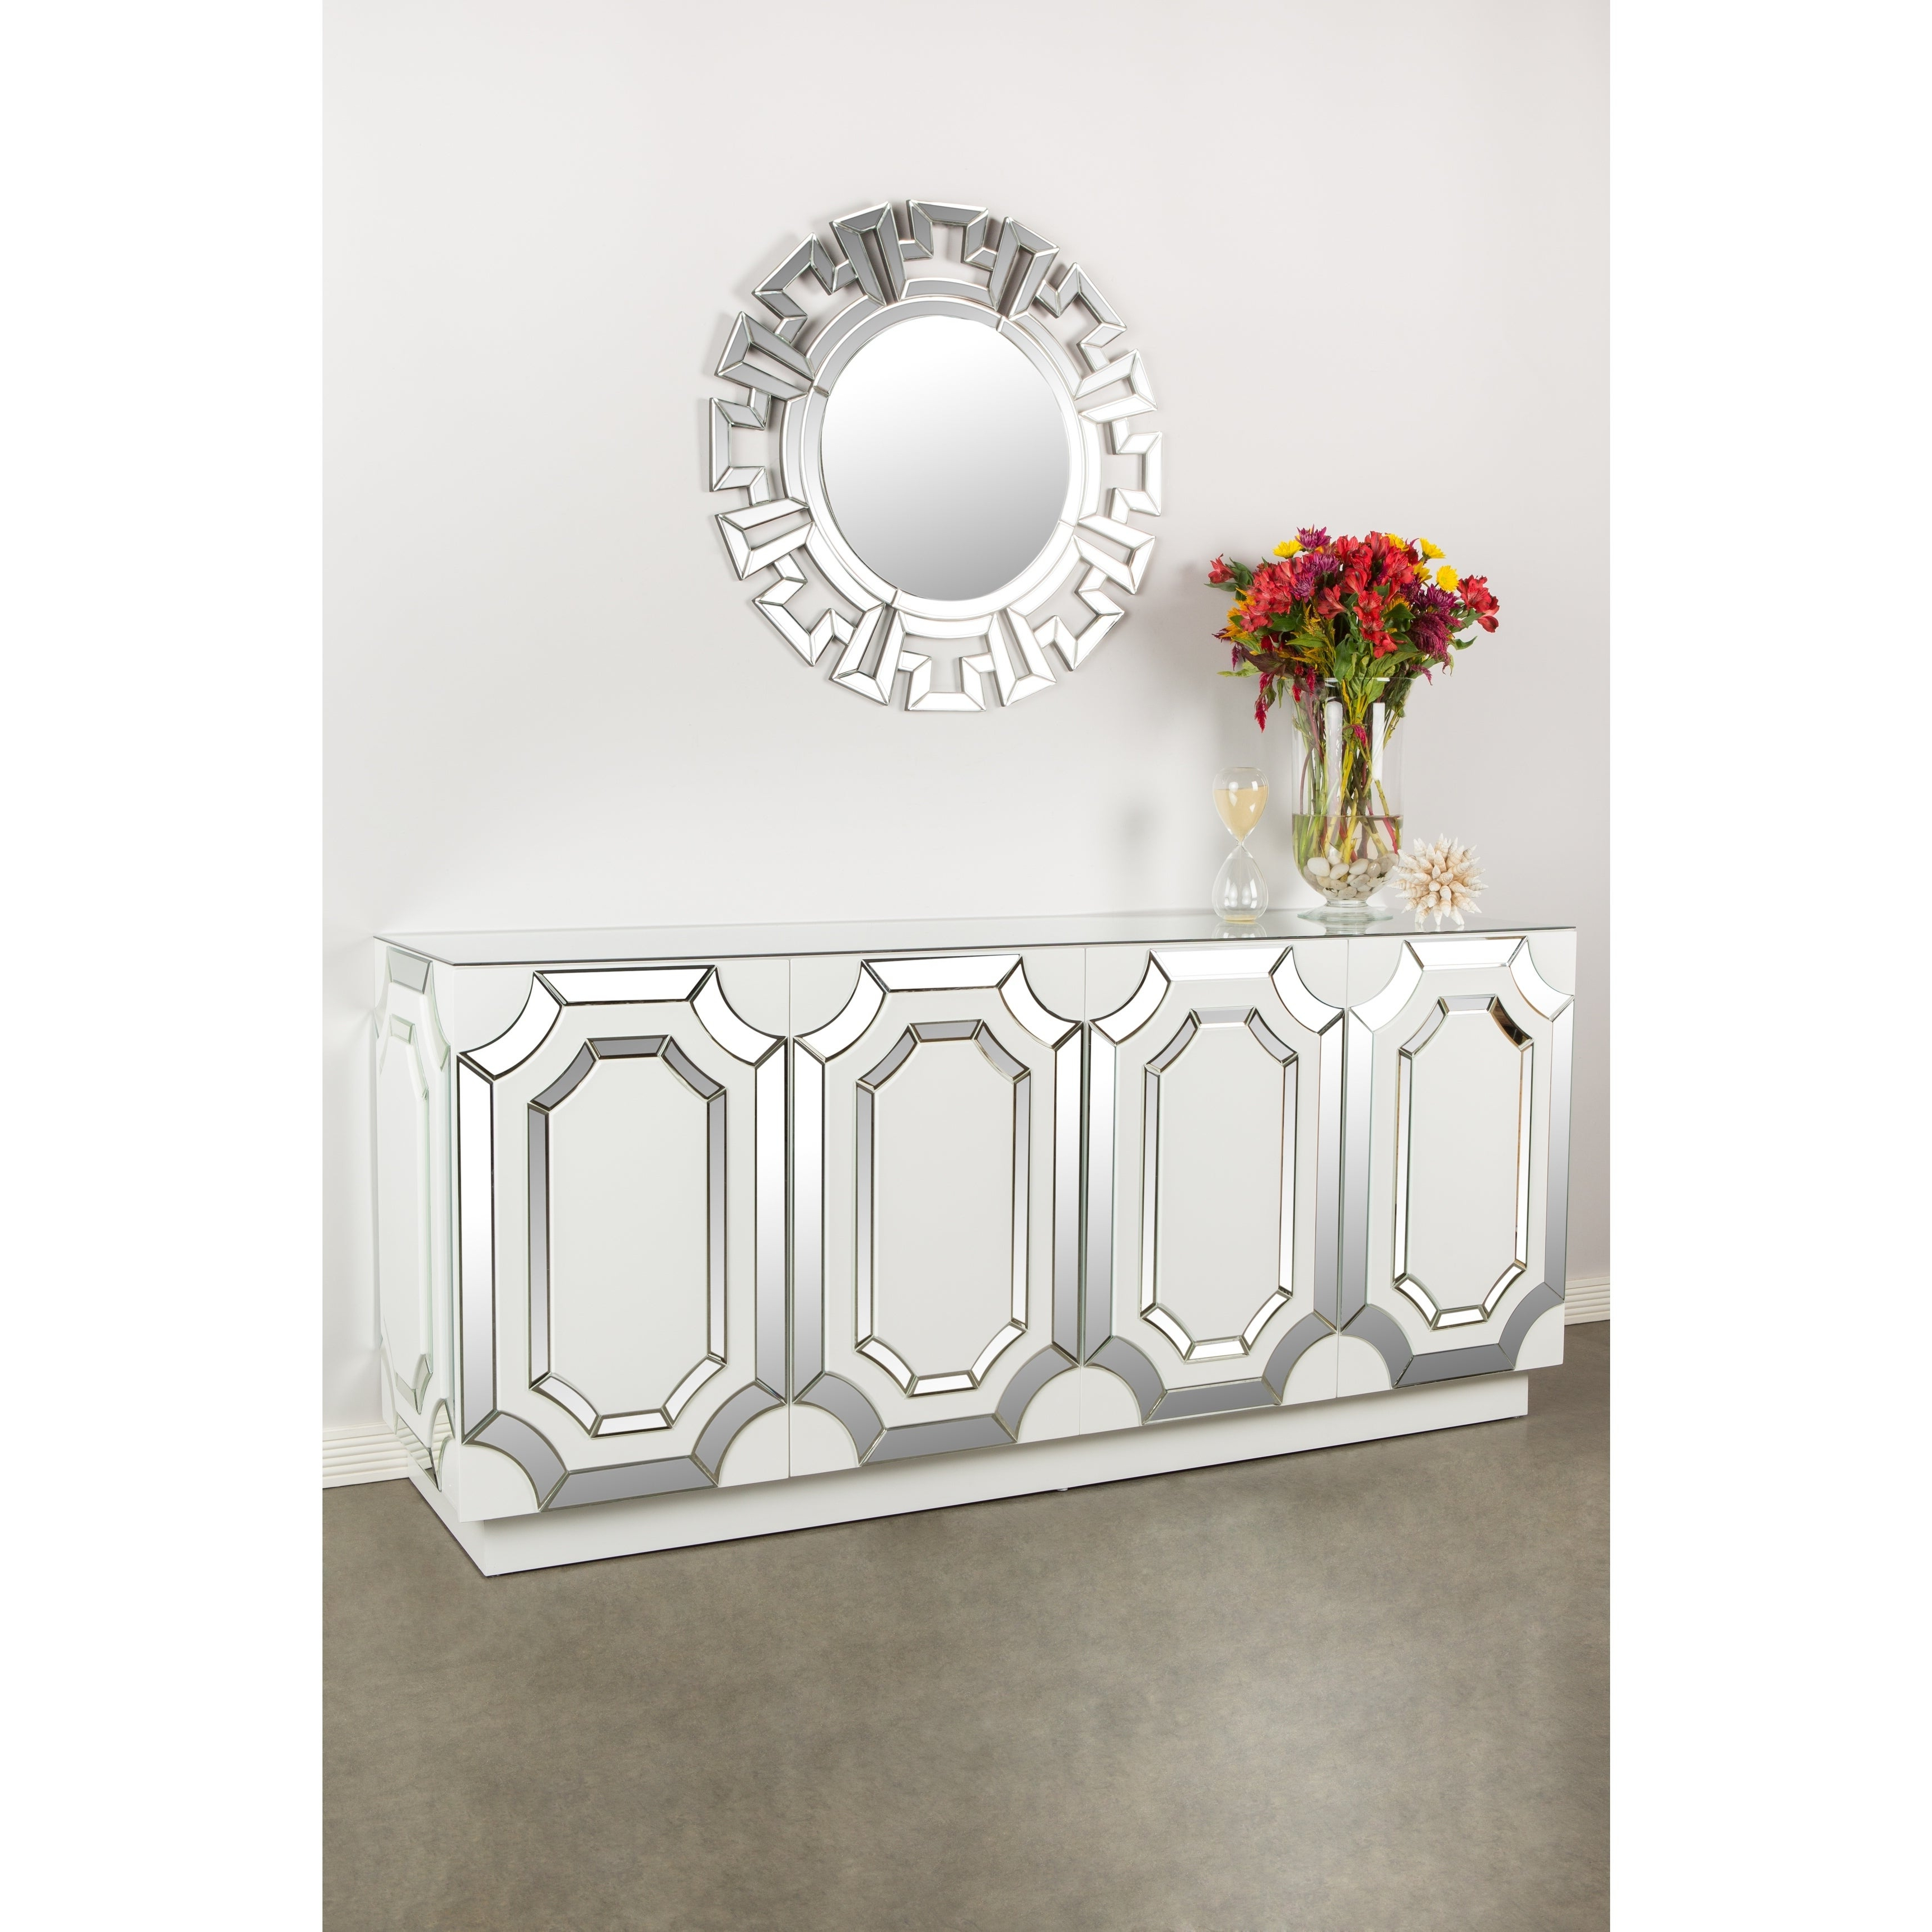 Widely Used Statementsj Lola Sideboard, 32 Inch Tall Within Lola Sideboards (View 20 of 20)